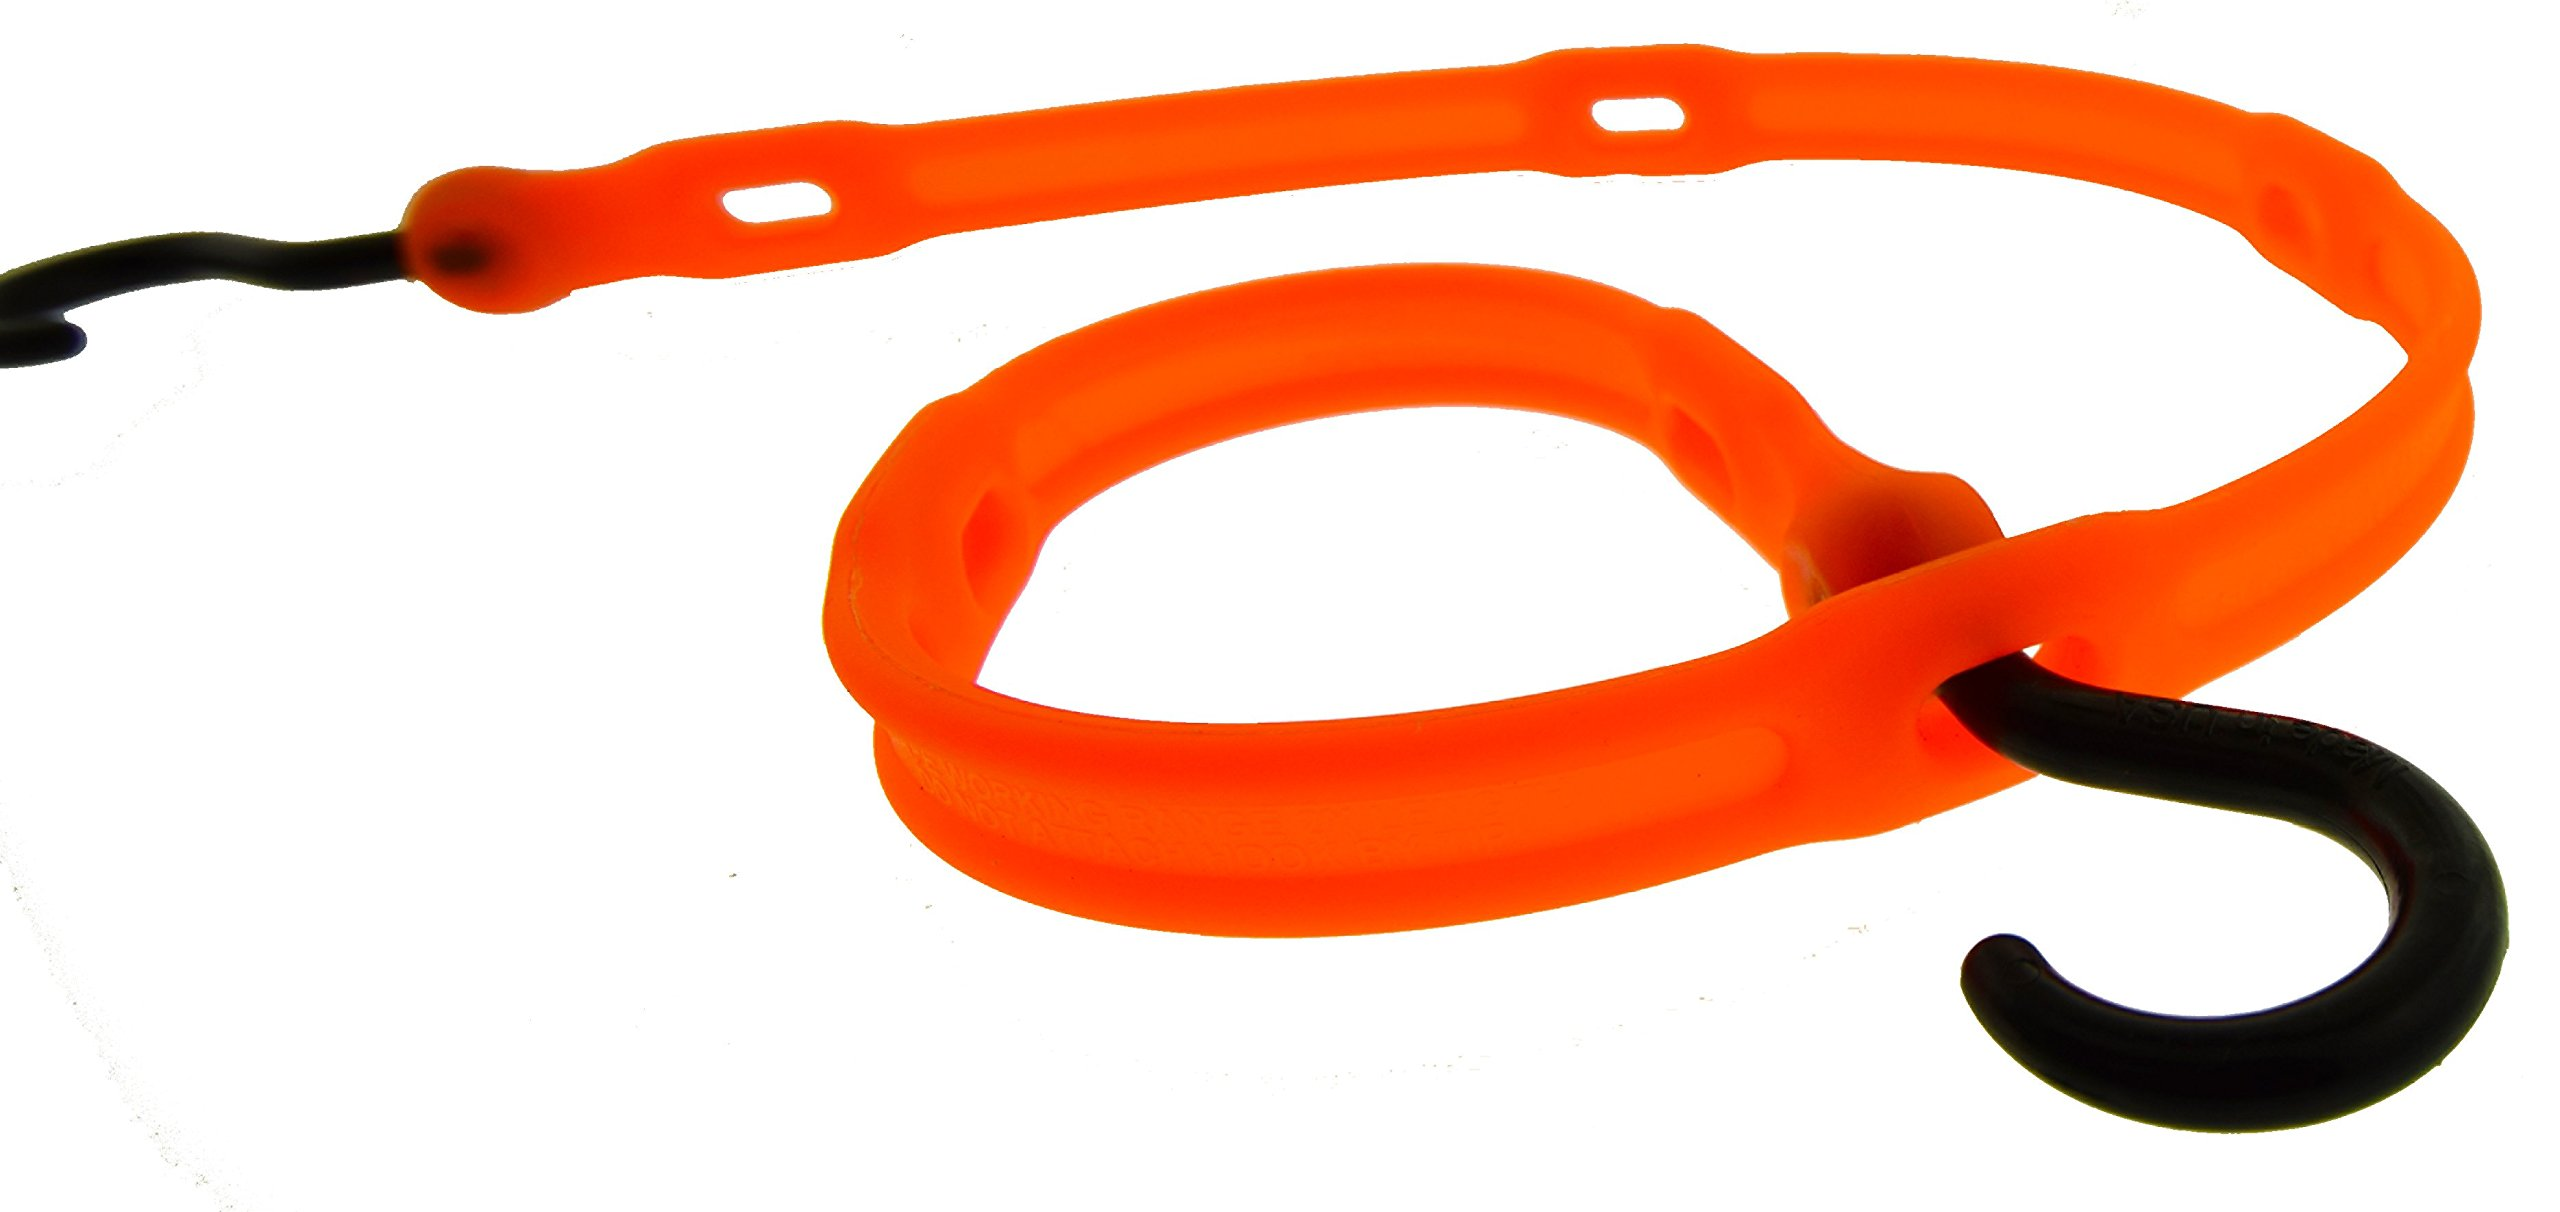 The Perfect Bungee by BihlerFlex, AS36NG Adjust-A-Strap Adjustable Bungee, 36'', Safety Orange